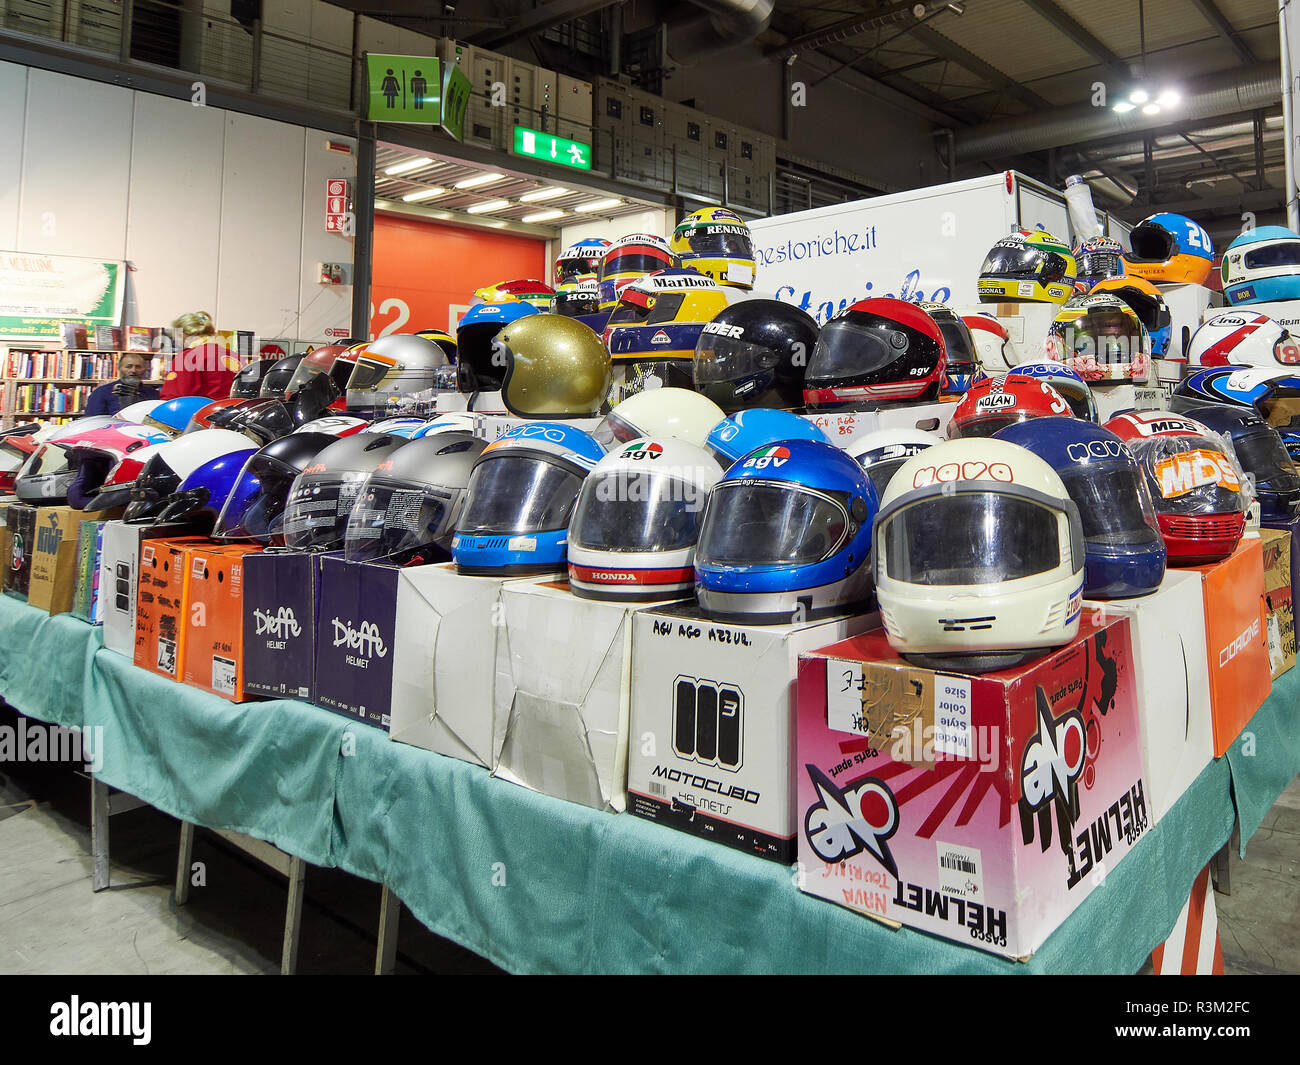 Milan, Lombardy Italy - November 23 , 2018 - Stand selling motorcycle or bike helmets at Autoclassica Milano 2018 edition at Fiera Milano Rho Credit: Armando Borges/Alamy Live News - Stock Image